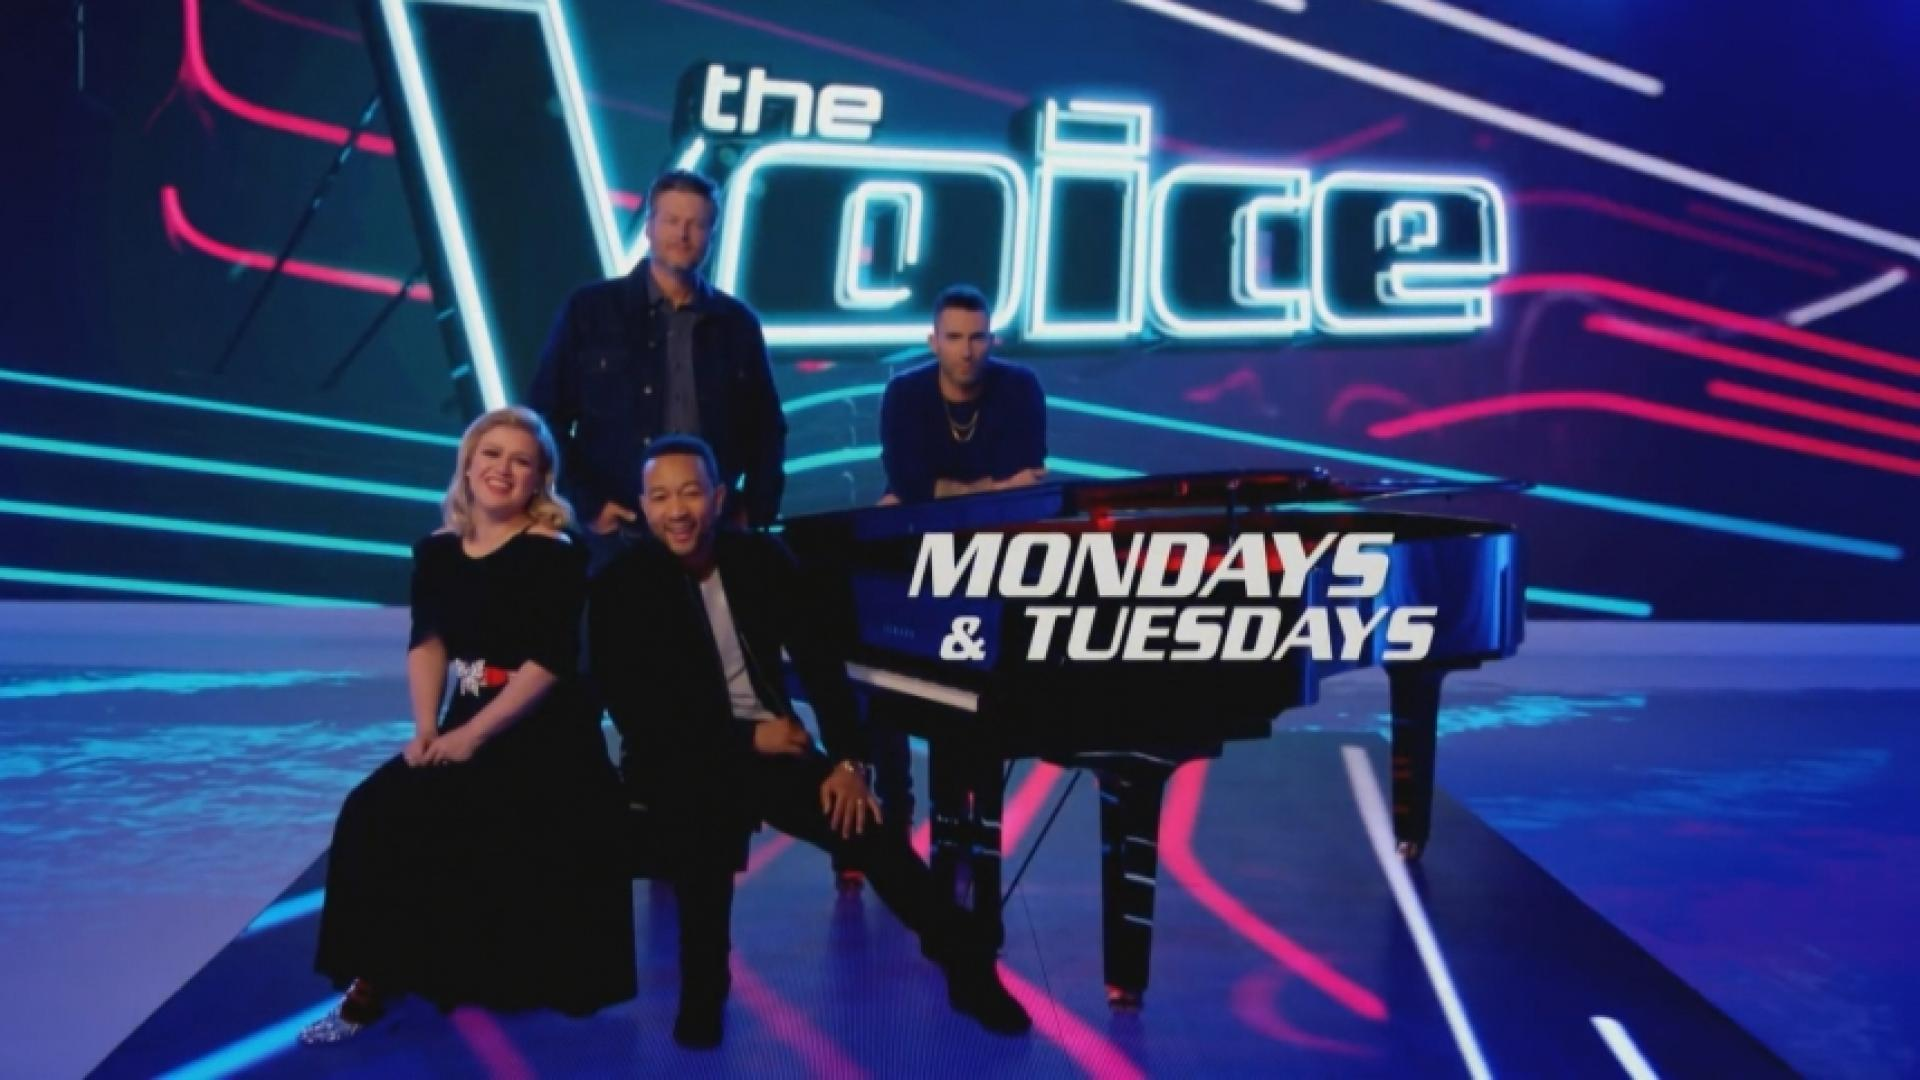 _The_Voice__is_back__0_20190225120921